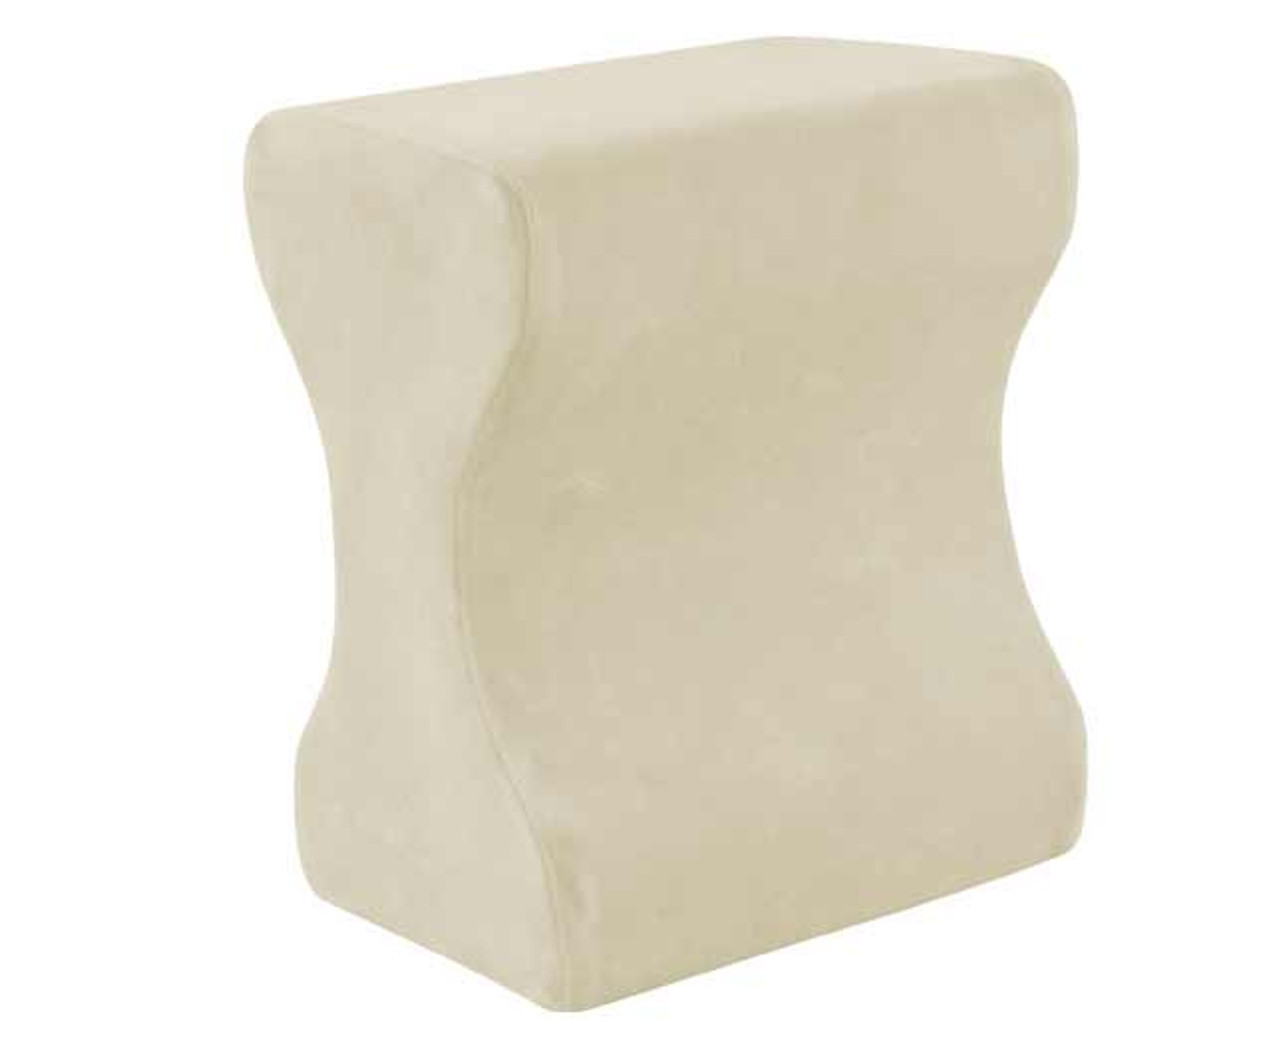 free leg pillow replacement cover just pay processing and handling